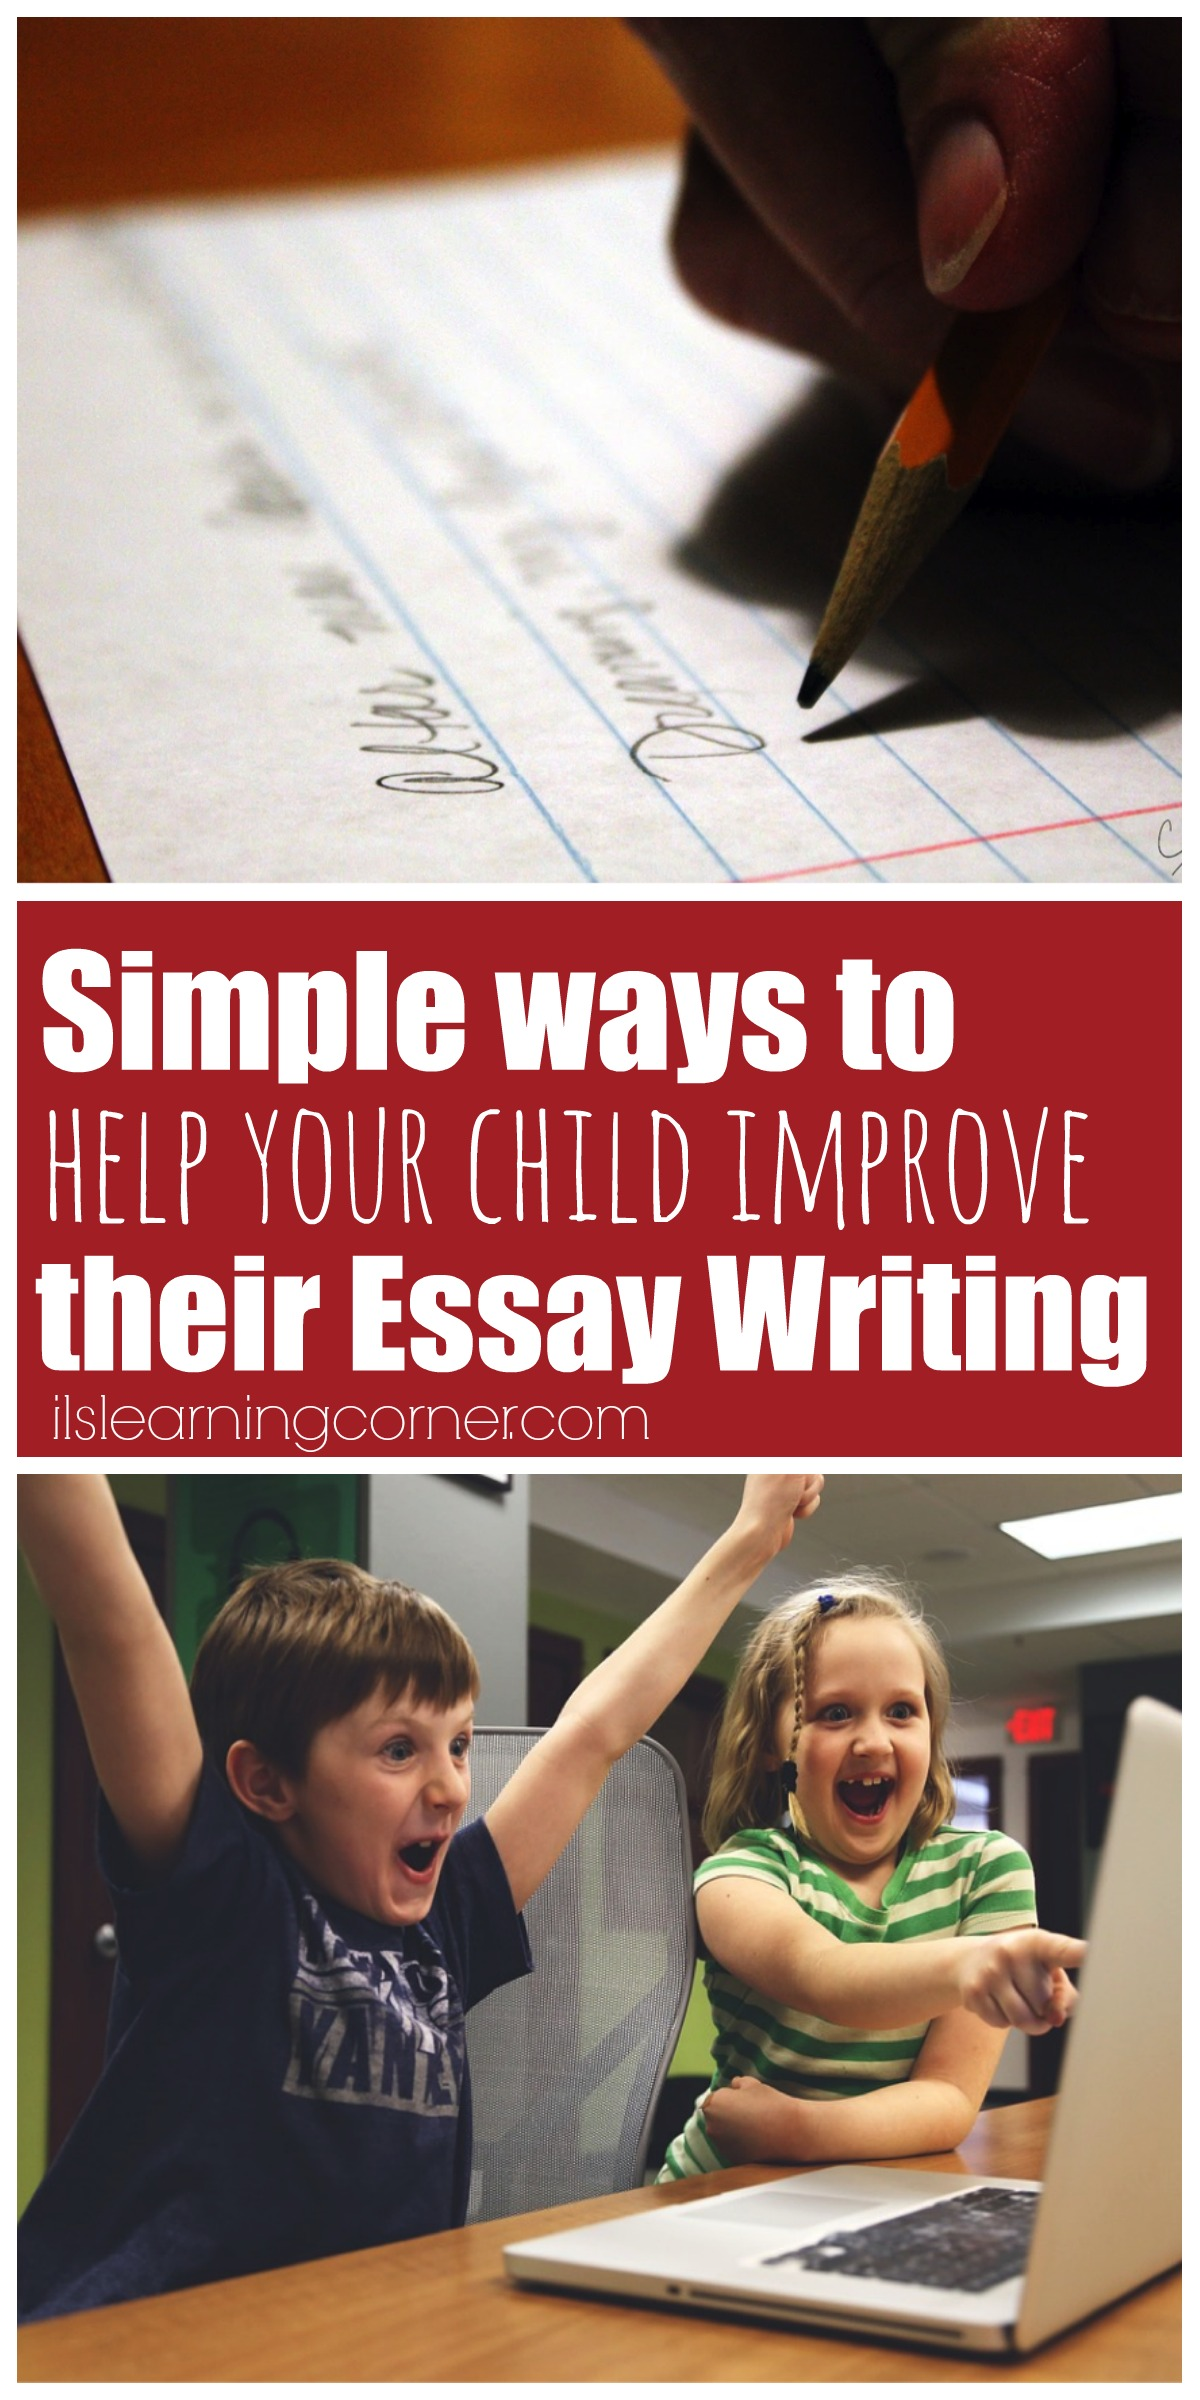 essay writing simple ways to help your child improve their essay  essay writing simple ways to help your child improve their essay writing